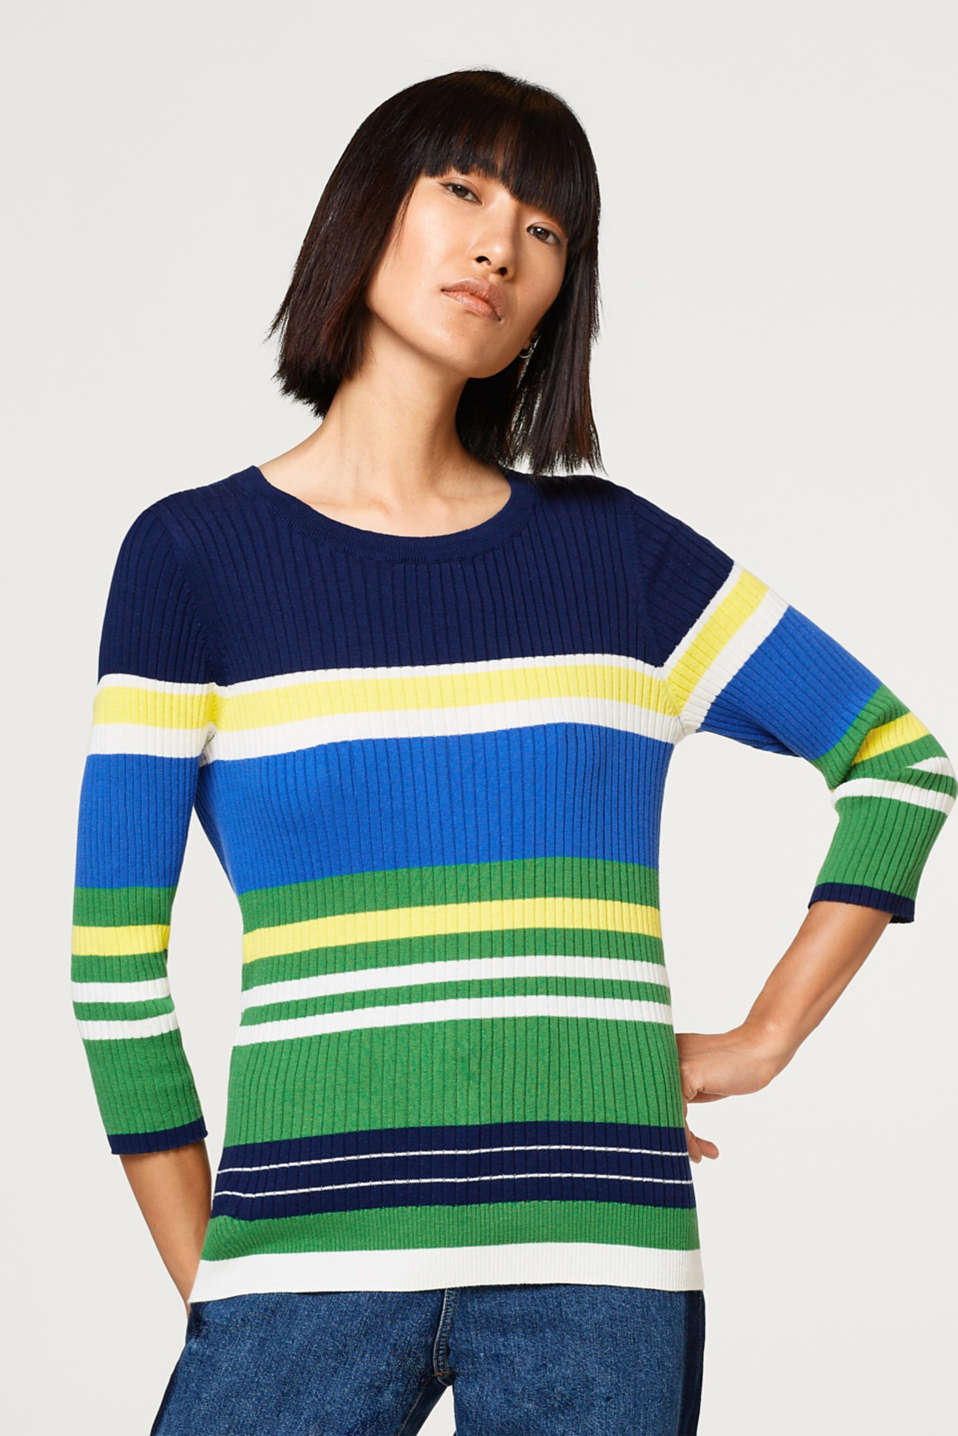 Esprit - Ribbed jumper with stripes, 100% cotton